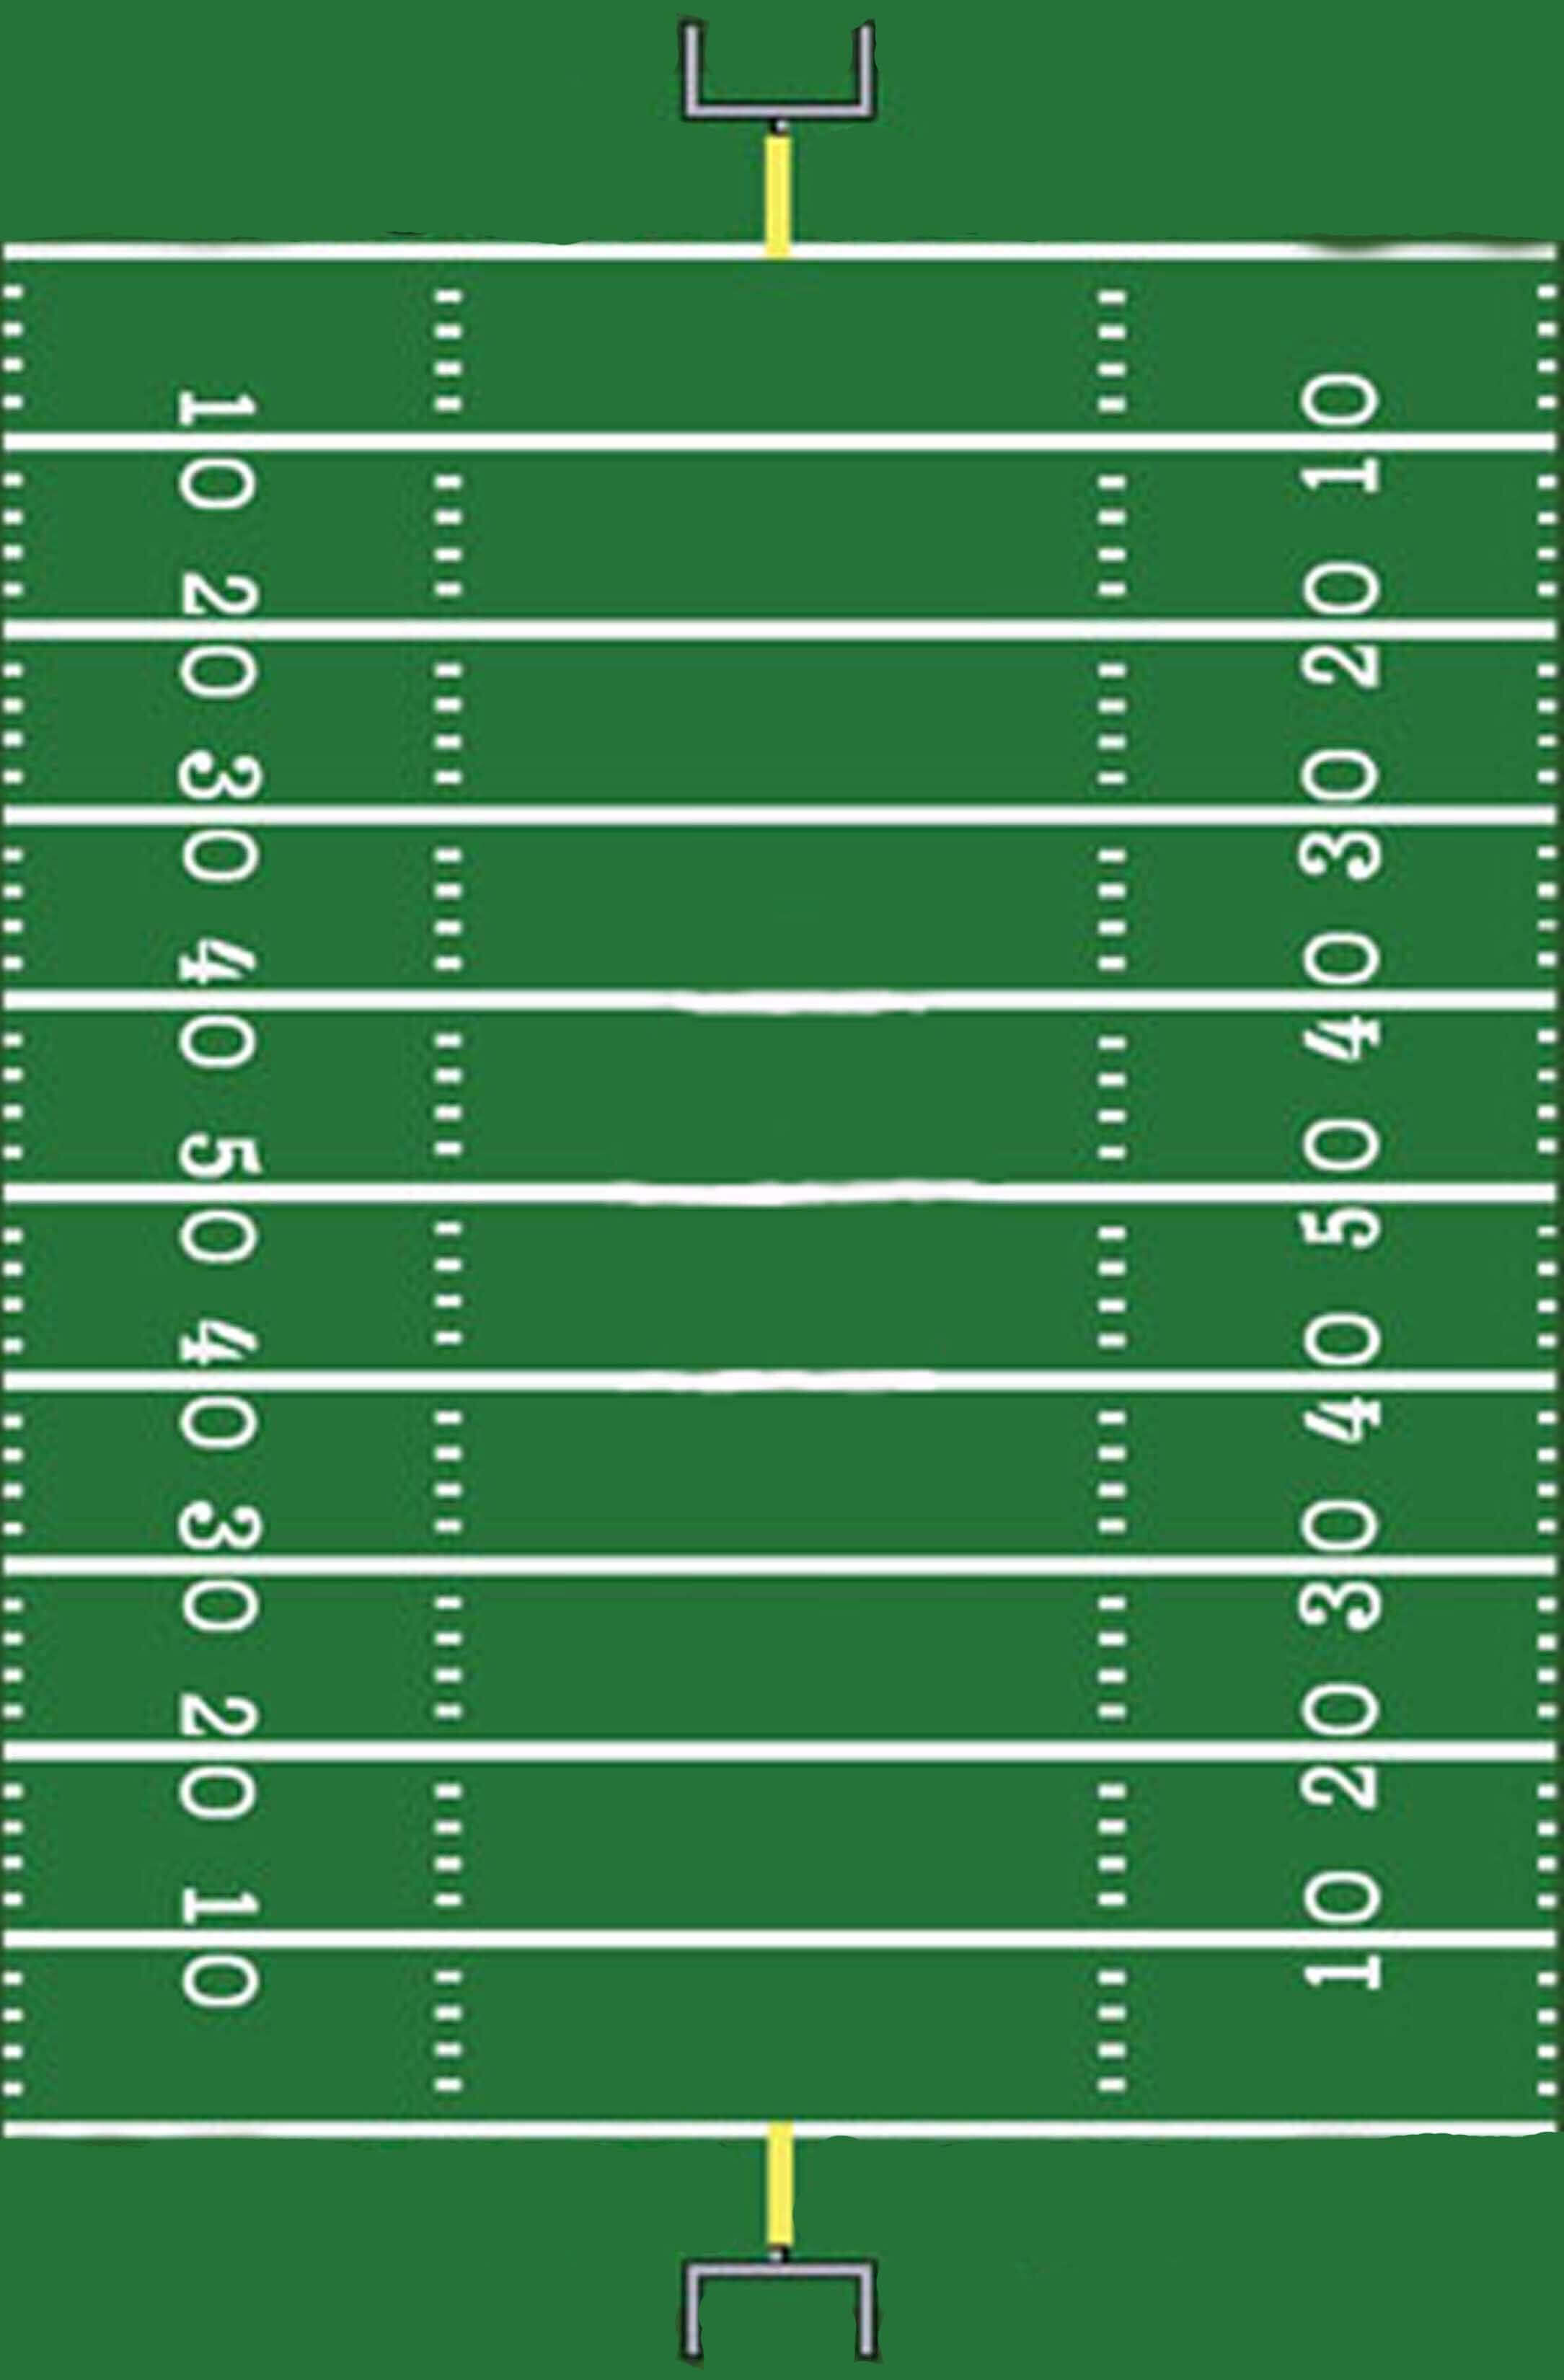 Football Field Template I Made For A Sign | Hunter's 1St With Blank Football Field Template